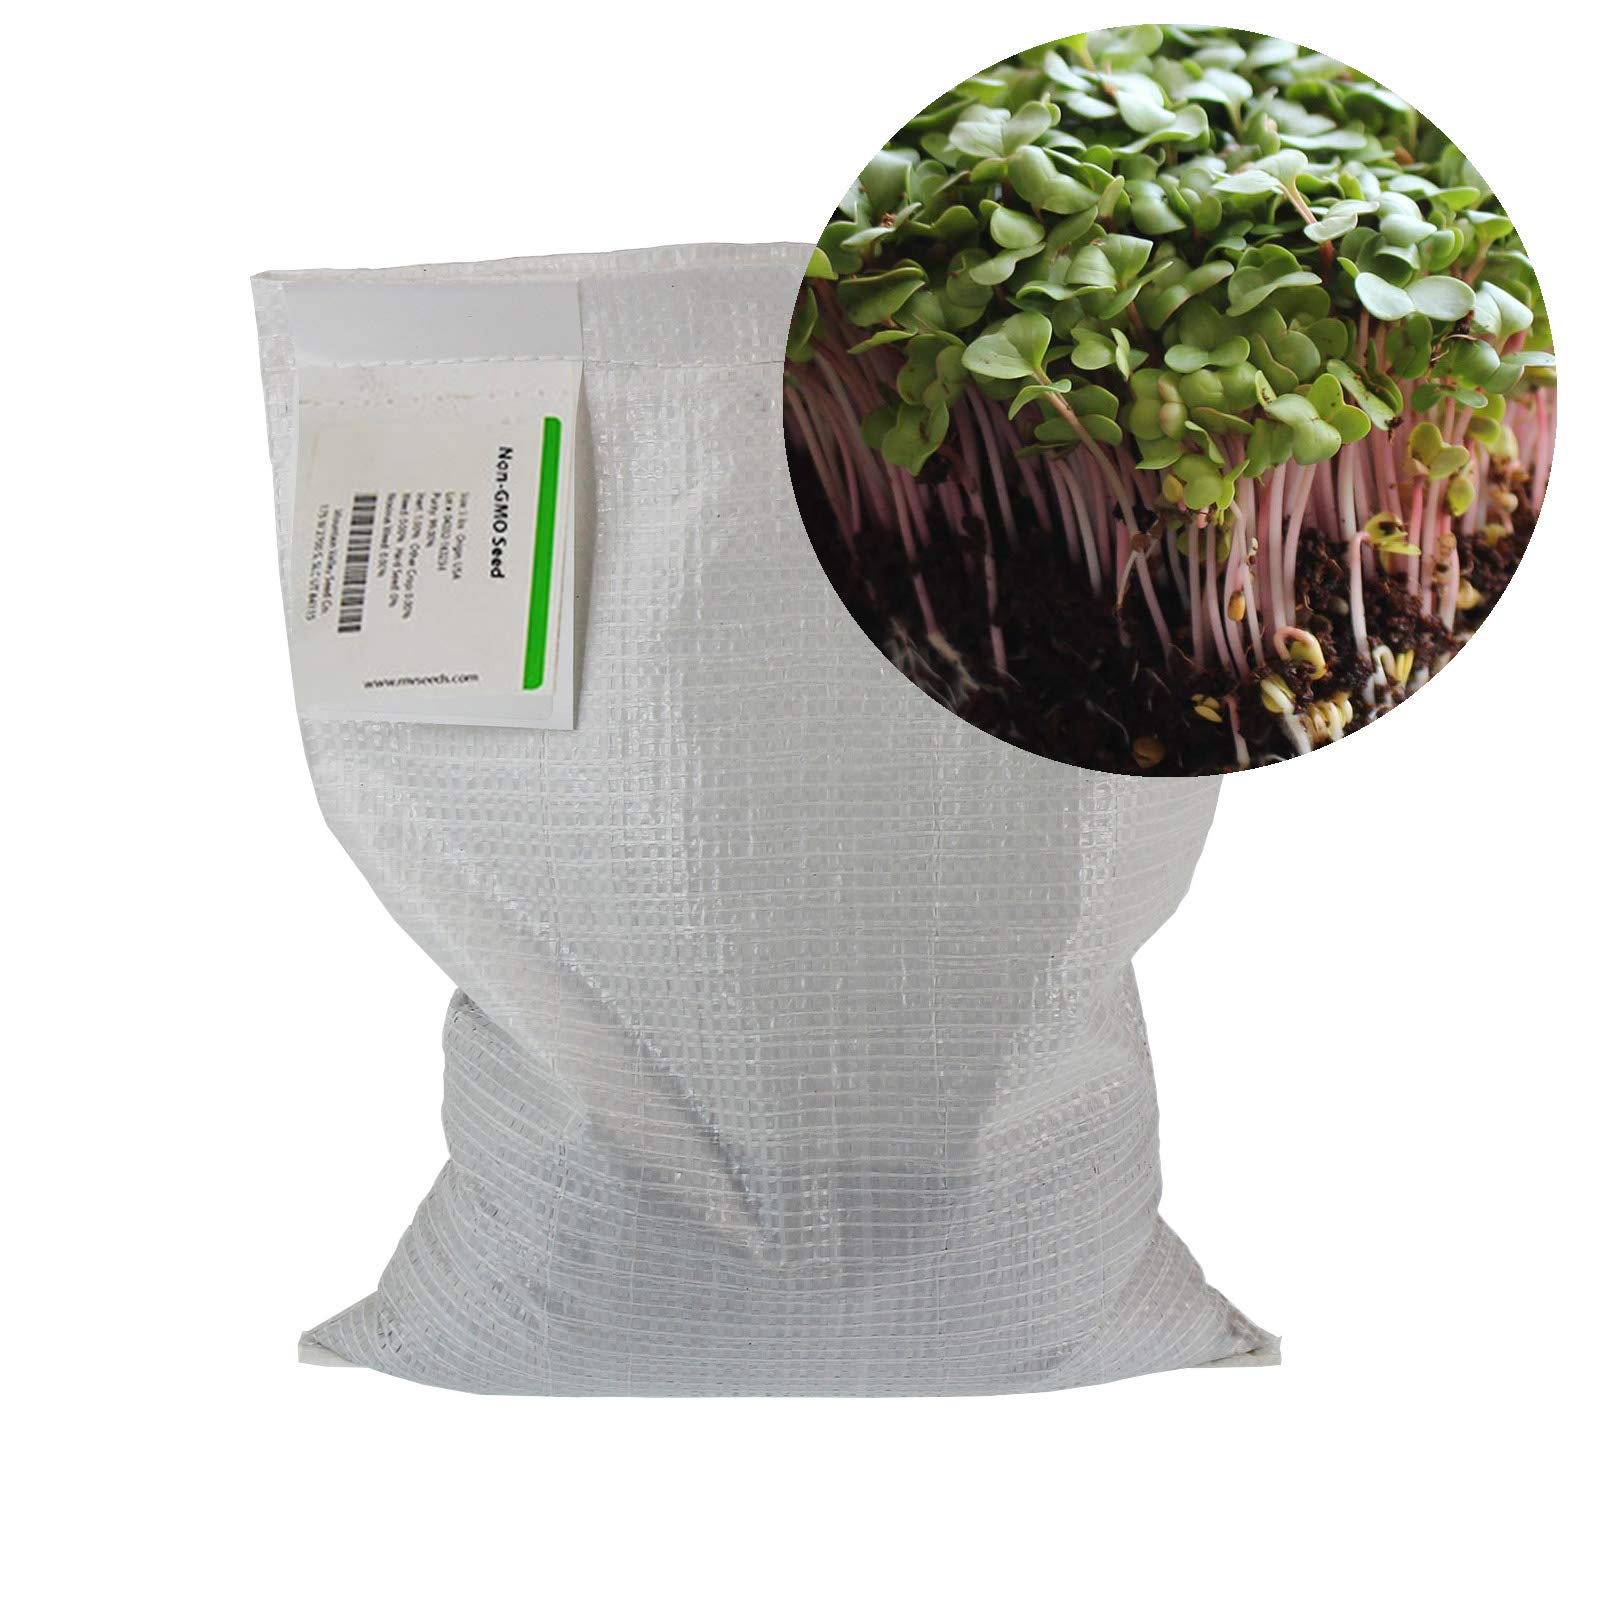 Radish Sprouting Seed - Red Arrow Variety - 5 Lb Bulk Seed - Heirloom Radish Sprouts - Non-GMO Sprouting and Micro Radishes by Mountain Valley Seed Company (Image #1)